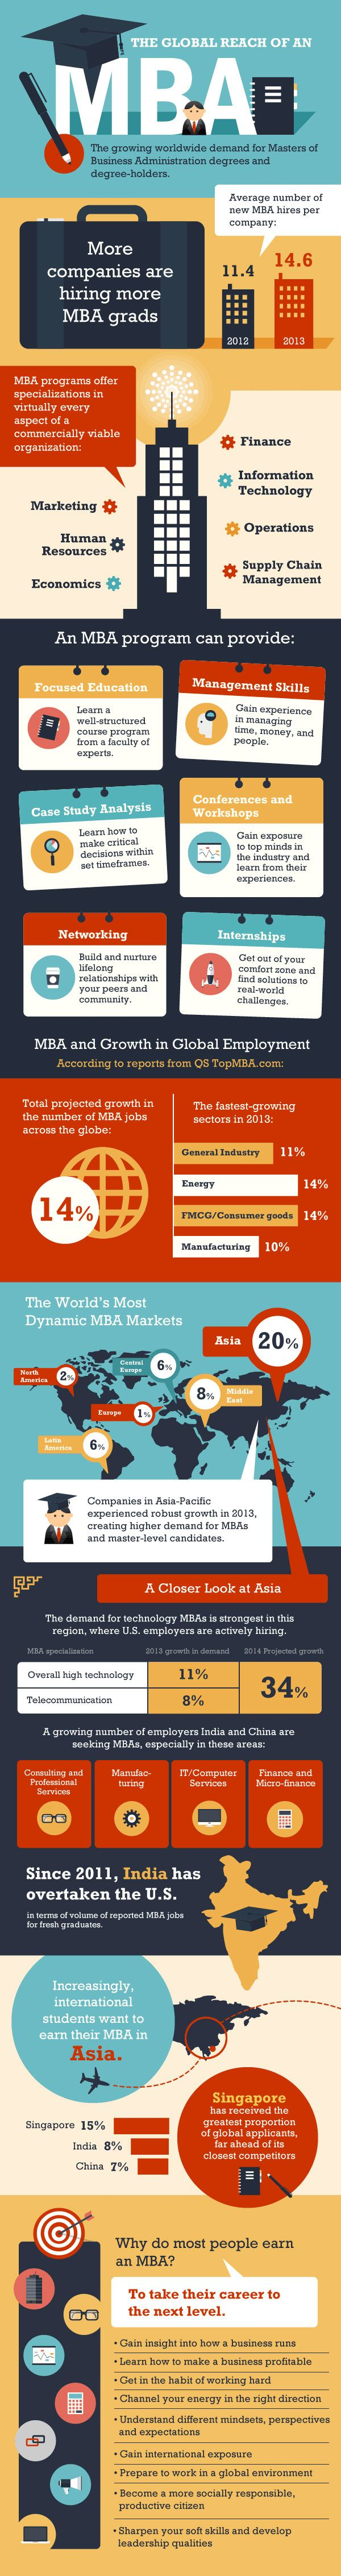 MBA Career Information & Statistics Infographic by